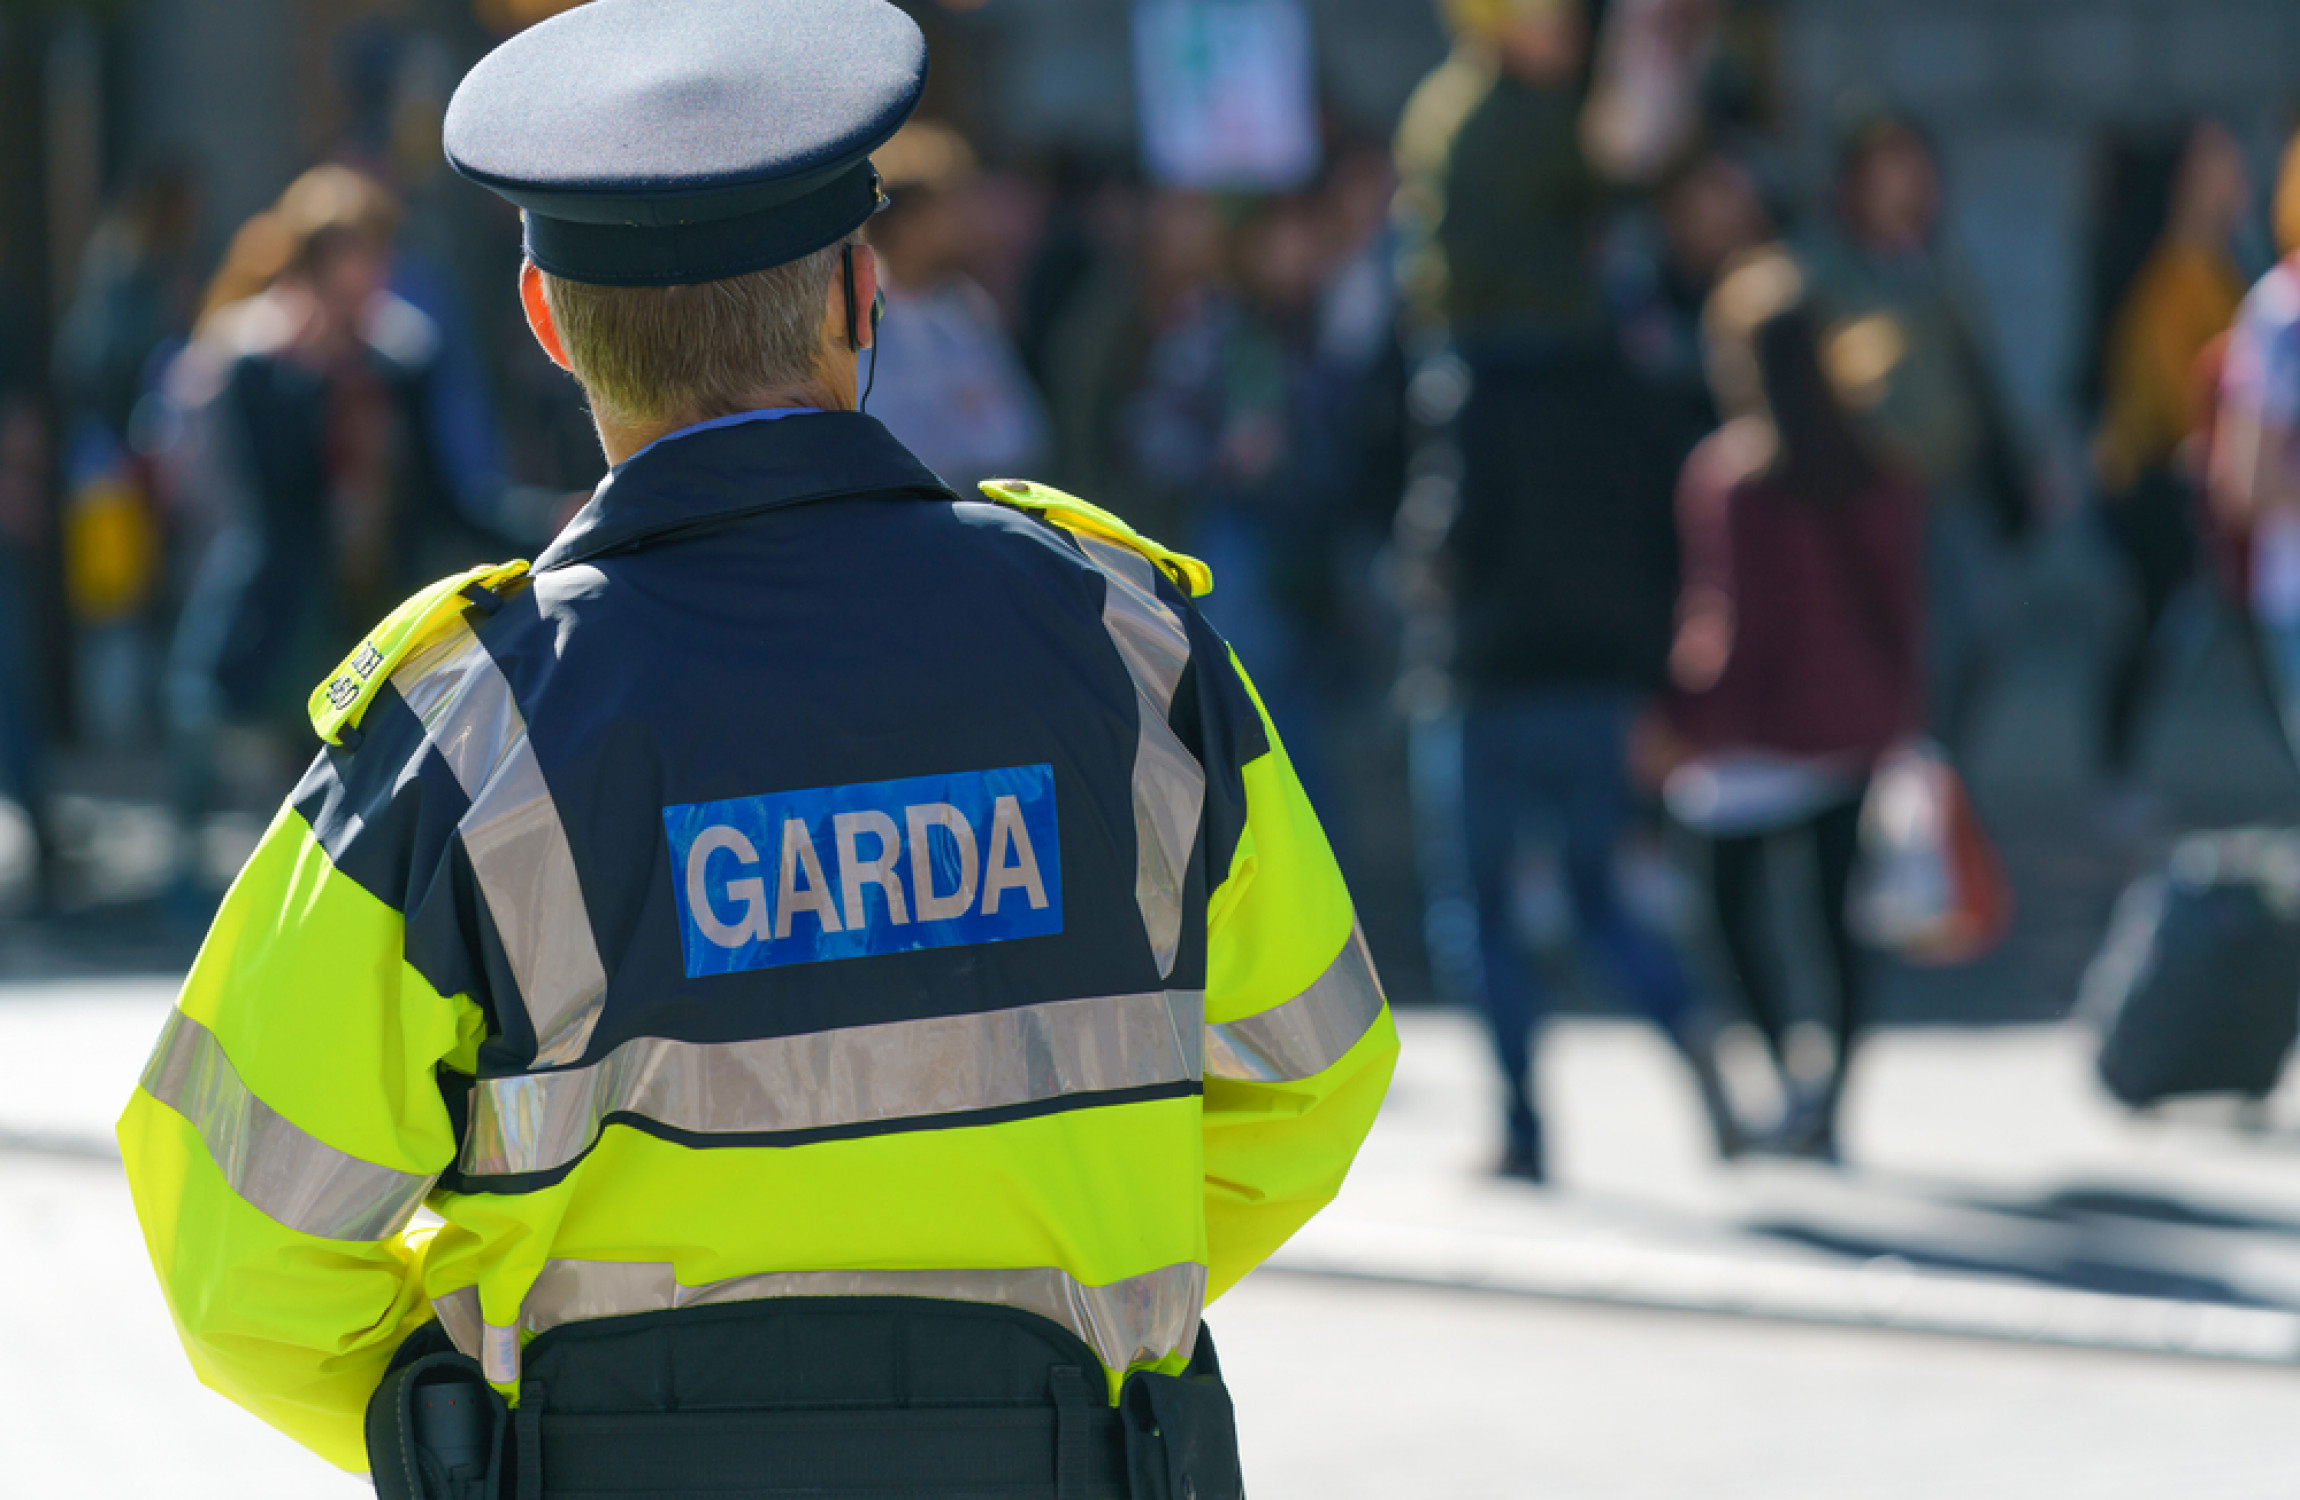 Man arrested following attack on gardaí in Dublin